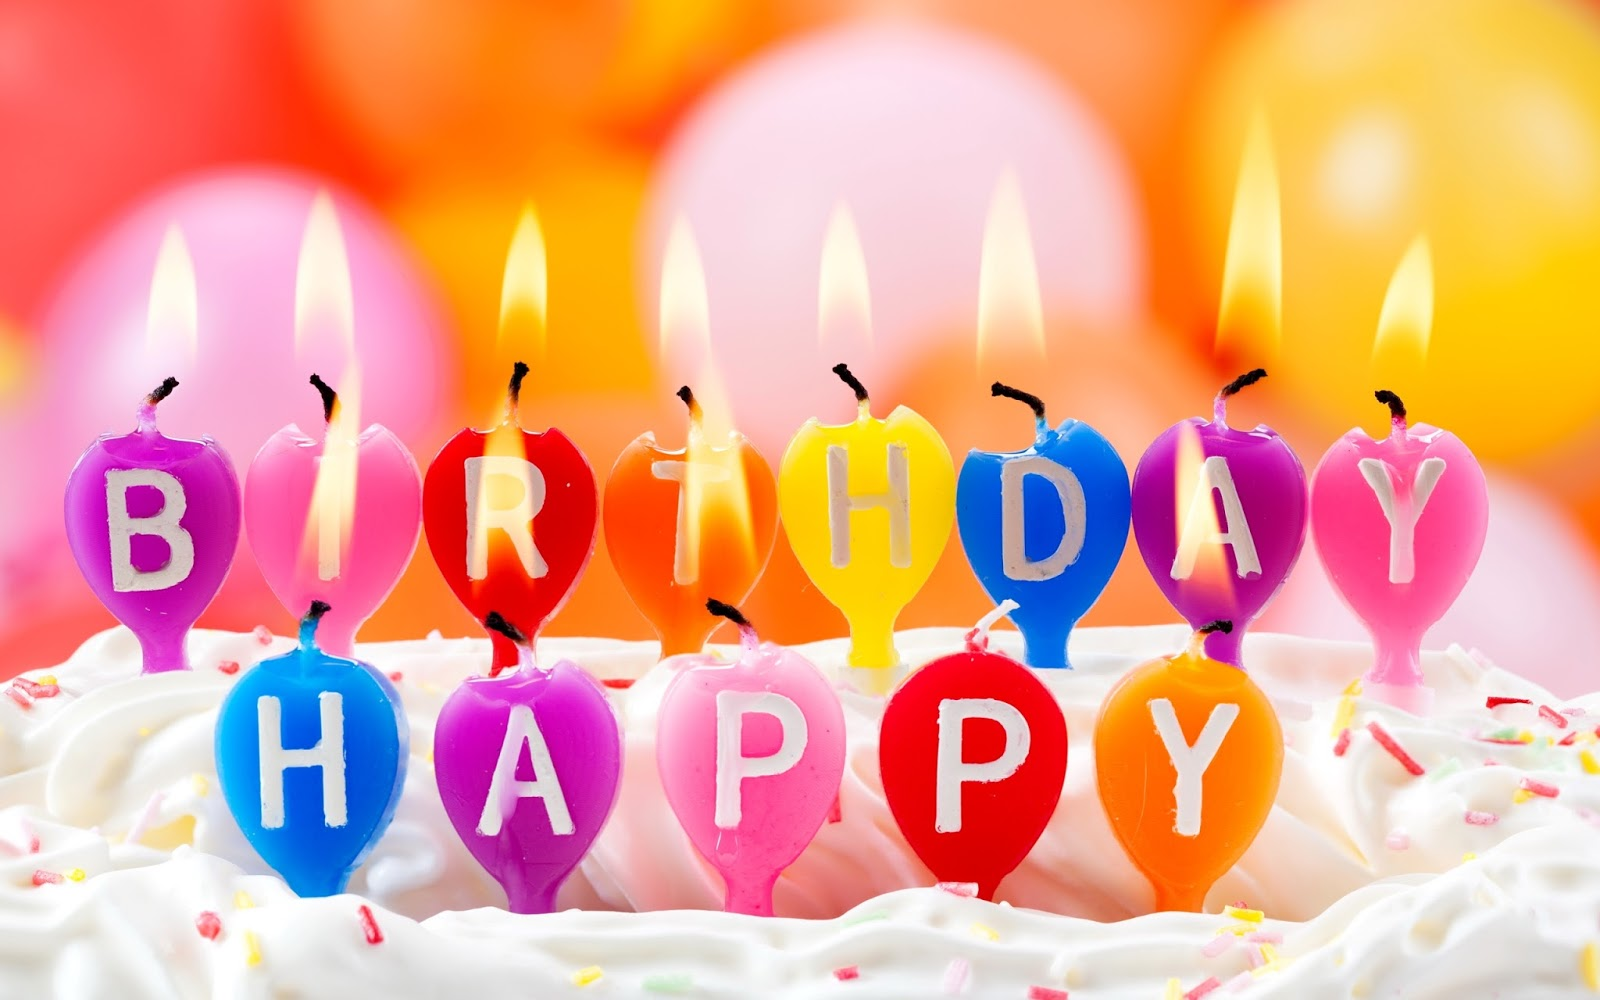 birthday picture messages for facebook ; happy-birthday-facebook-cards-happy-birthday-wishes-for-your-wife-messages-poems-and-quotes-to-write-on-her-birthday-card-wishes-friends